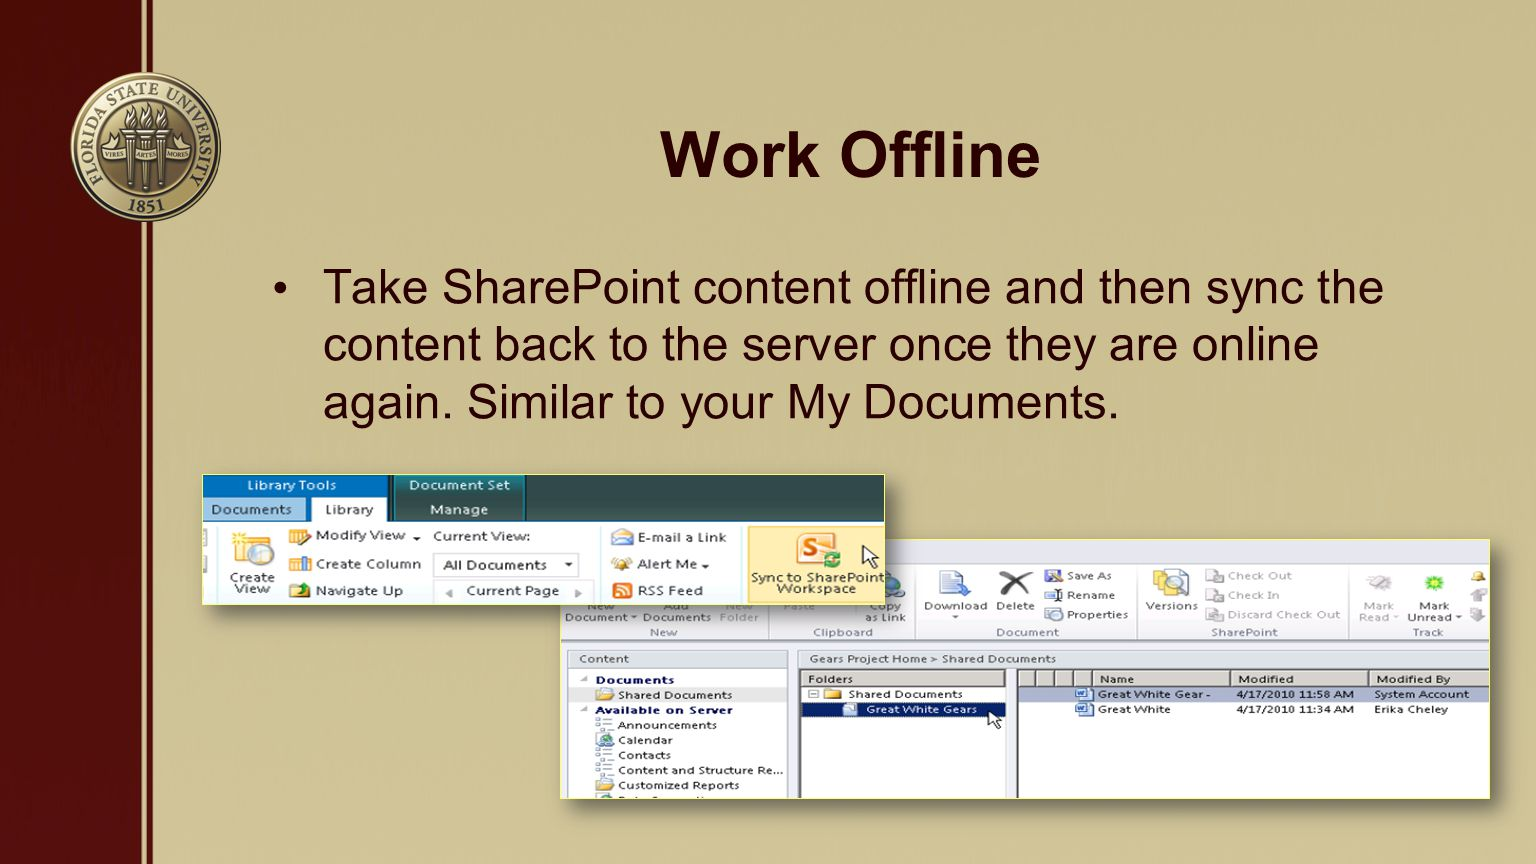 Work Offline Take SharePoint content offline and then sync the content back to the server once they are online again.